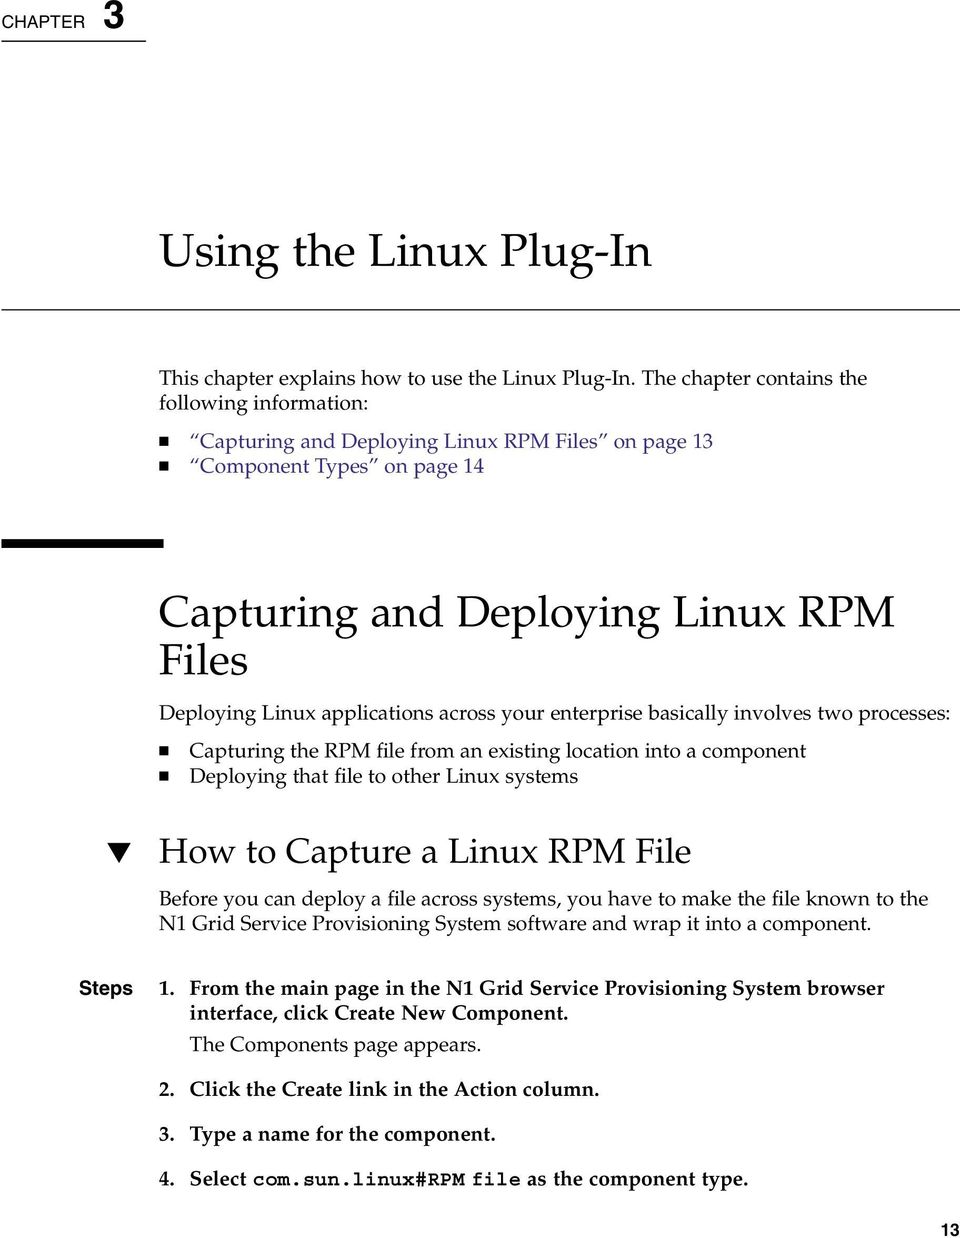 across your enterprise basically involves two processes: Capturing the RPM file from an existing location into a component Deploying that file to other Linux systems How to Capture a Linux RPM File